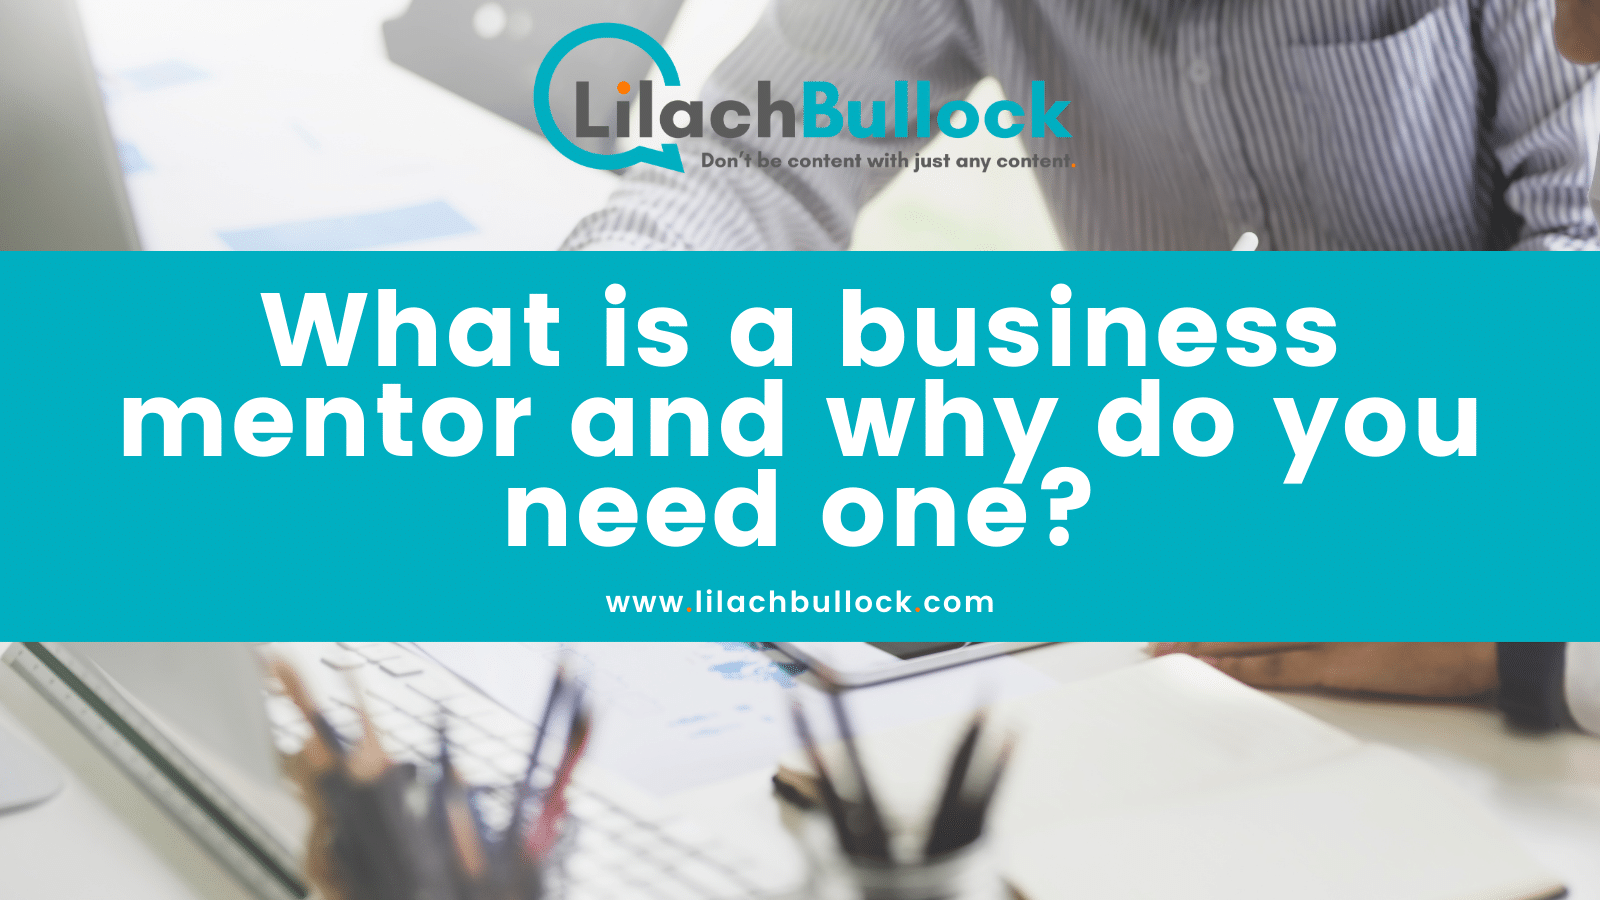 What is business mentoring